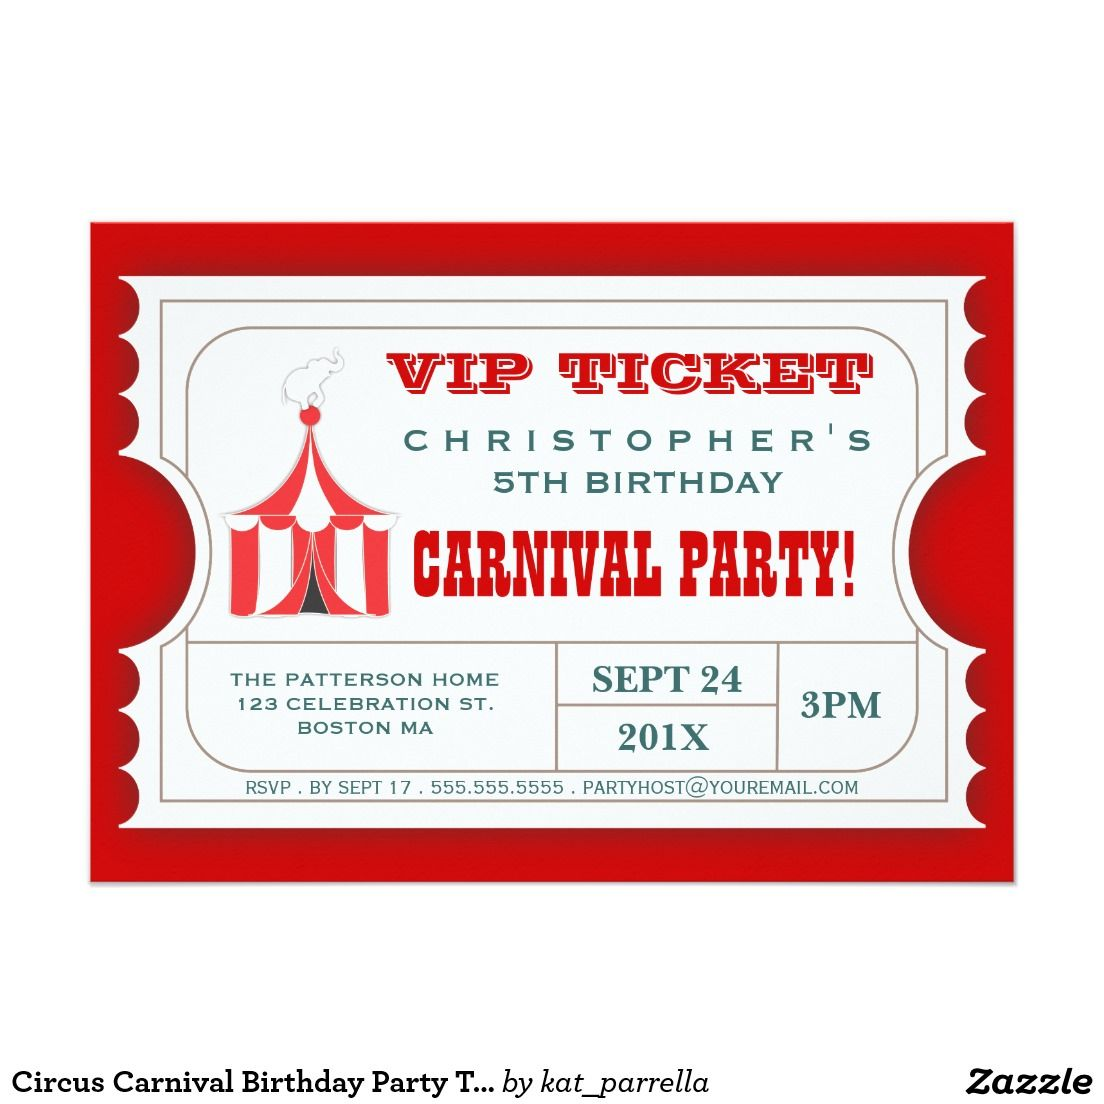 Circus Carnival Birthday Party Ticket Invitation | Birthday ...